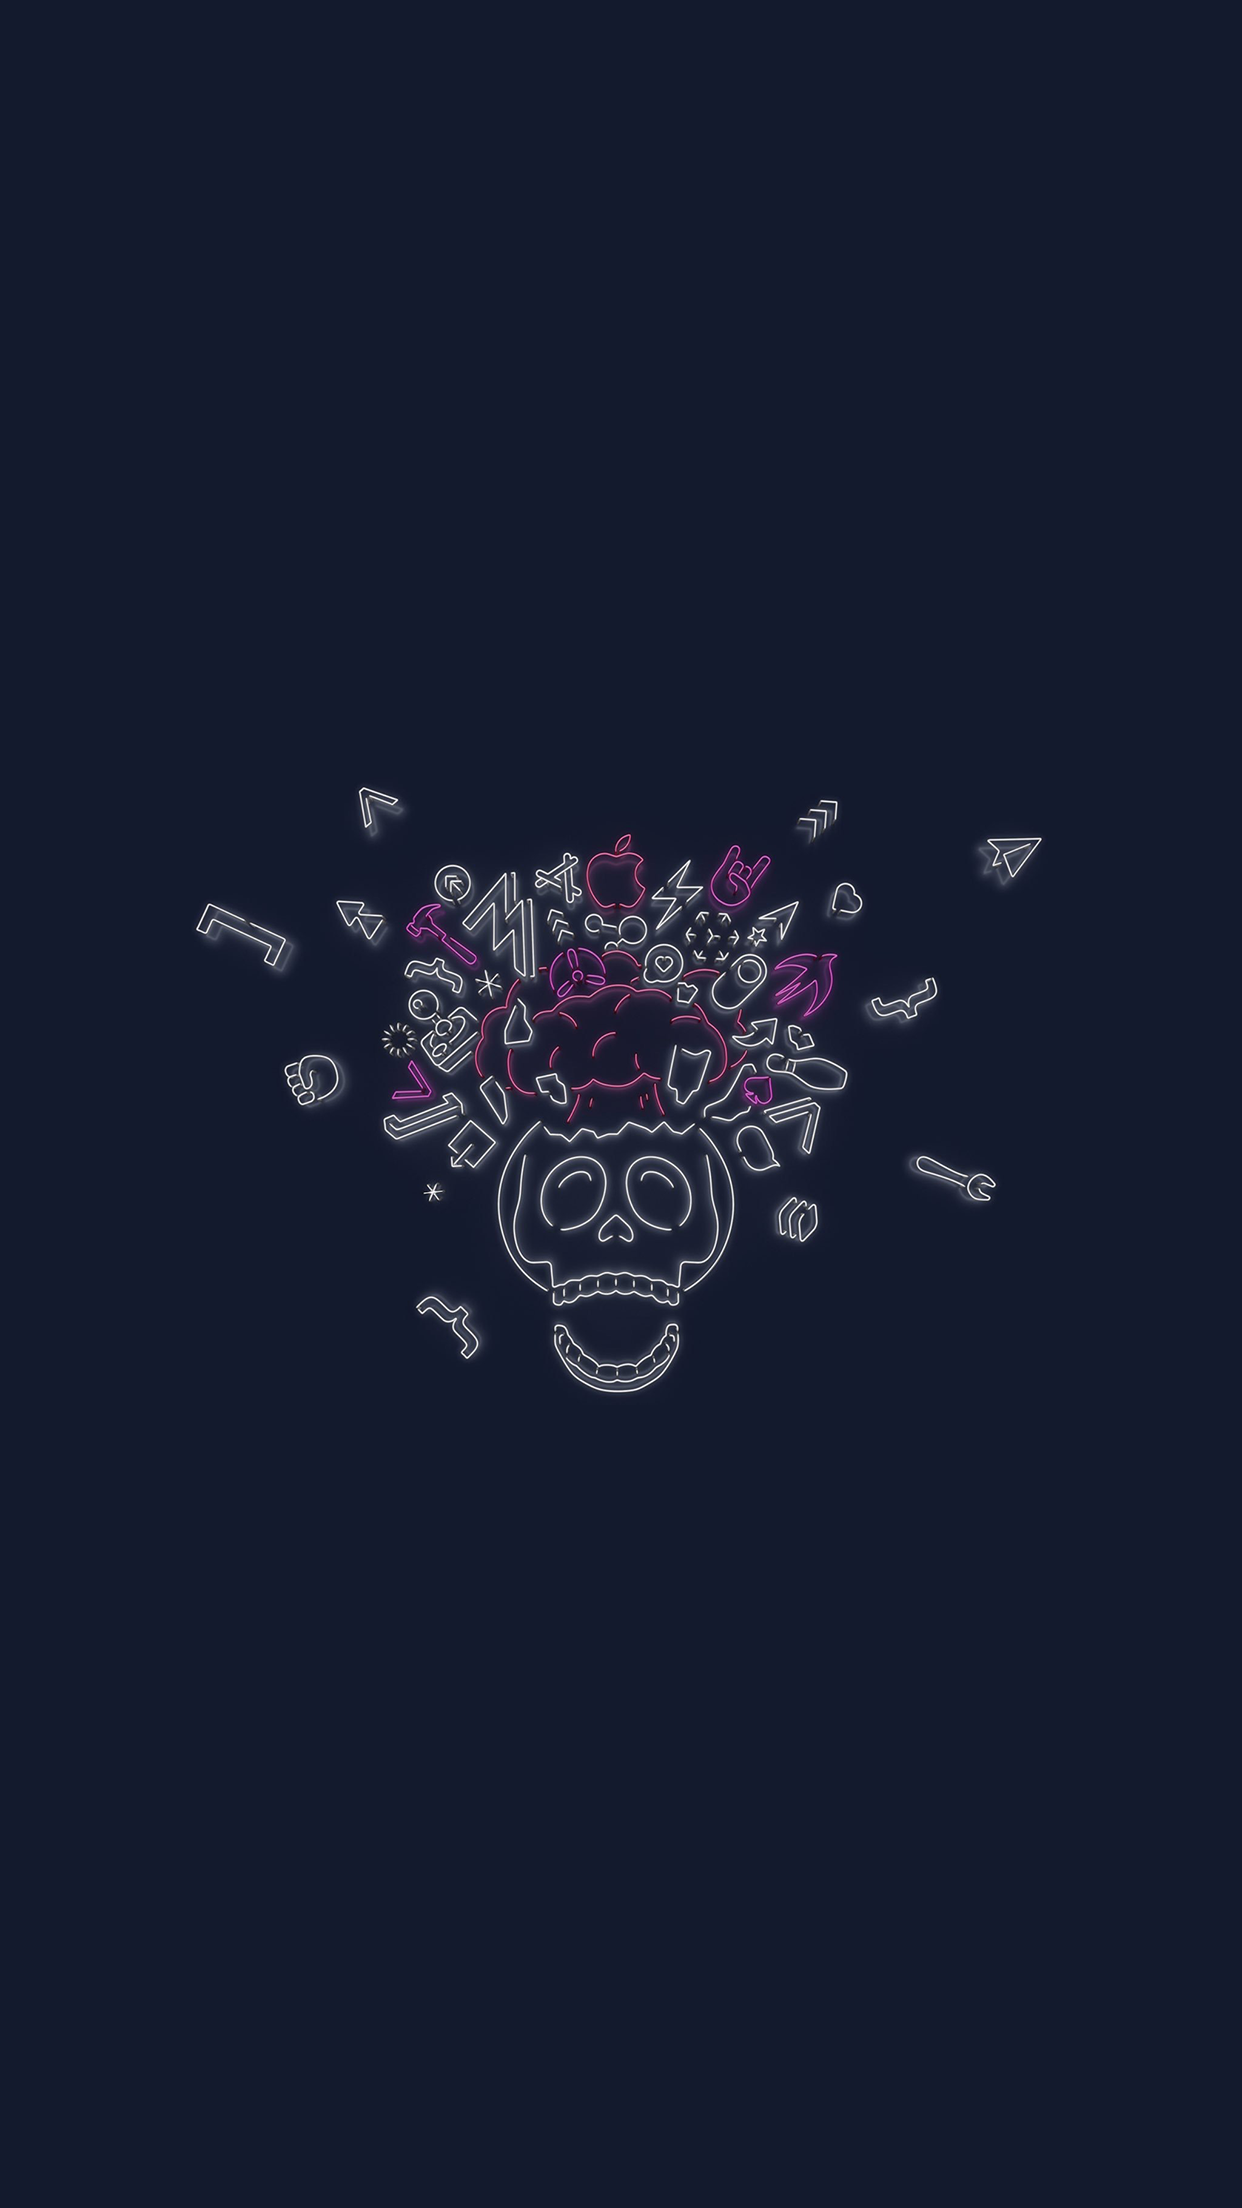 Download The Wwdc 2019 Dark Mode Themed Wallpapers For